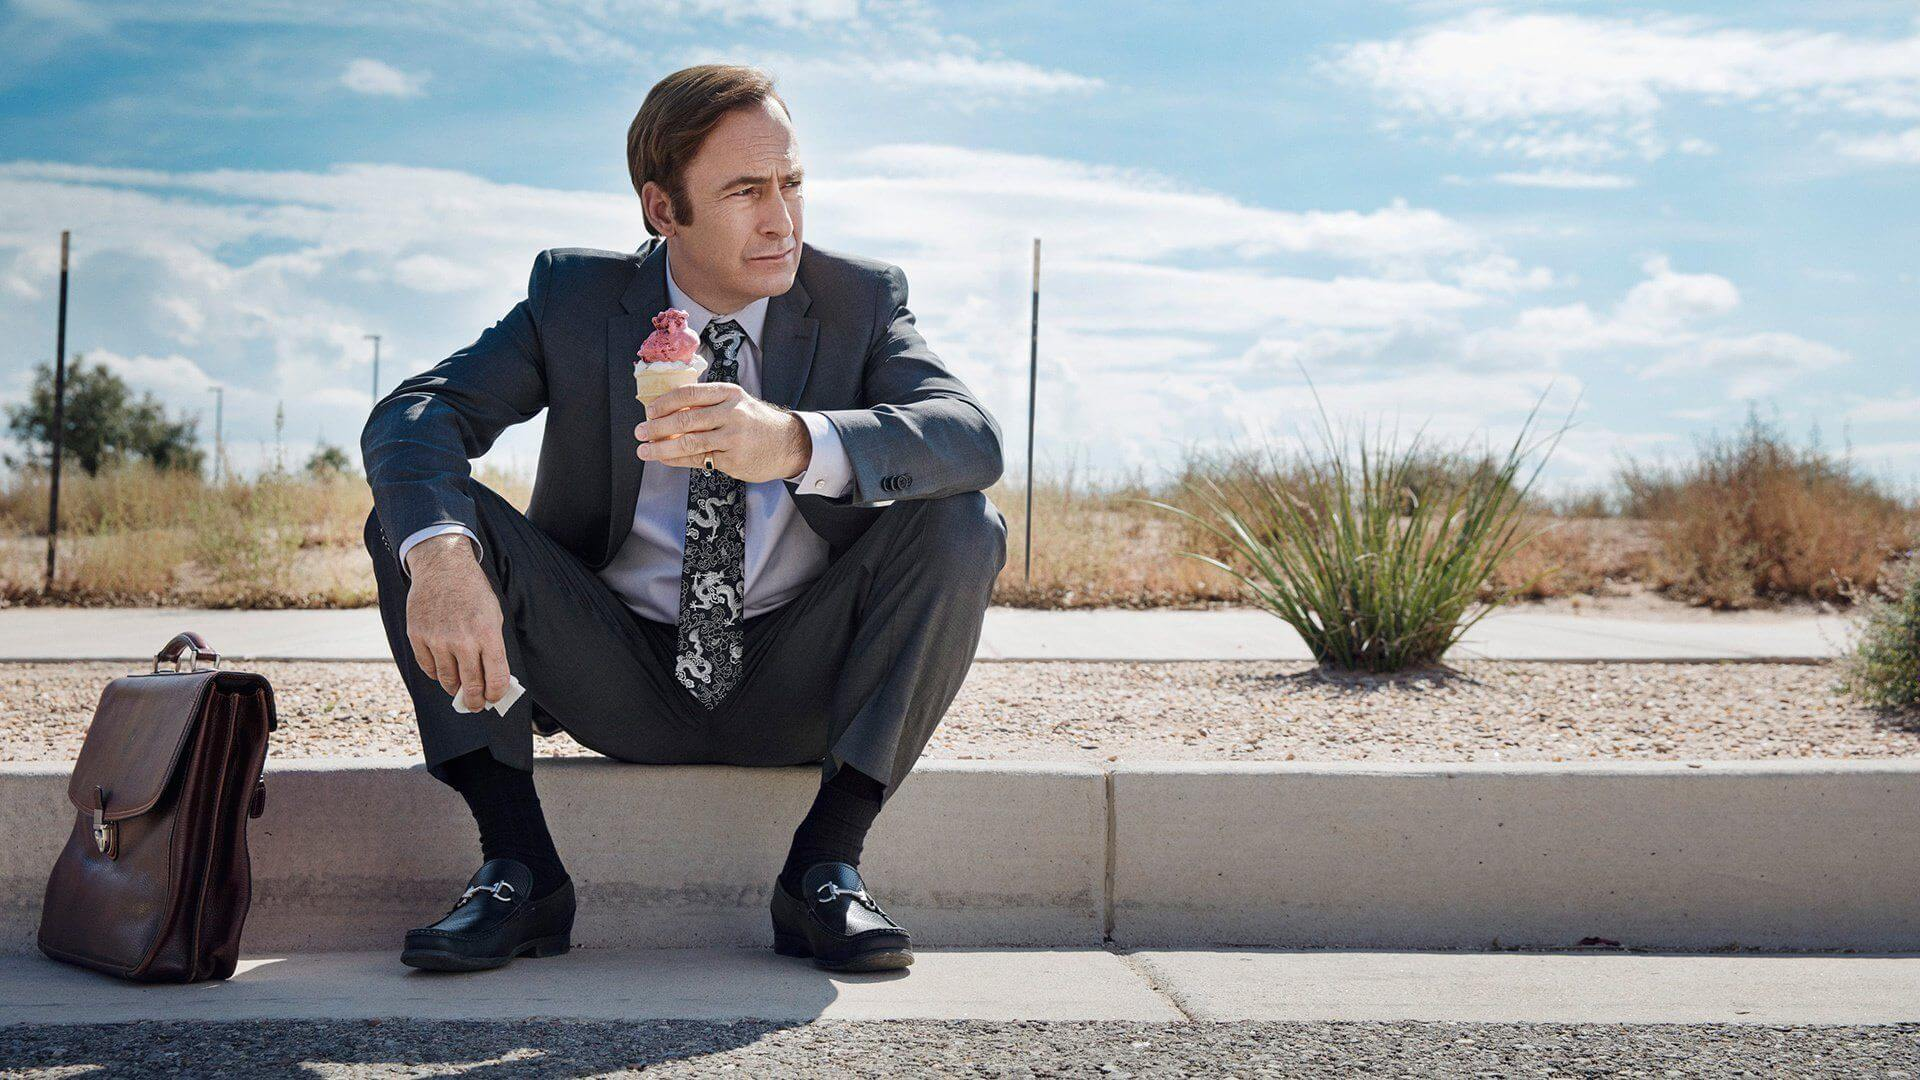 Better Call Saul: Top 10 TV Shows To Watch Before Season 6